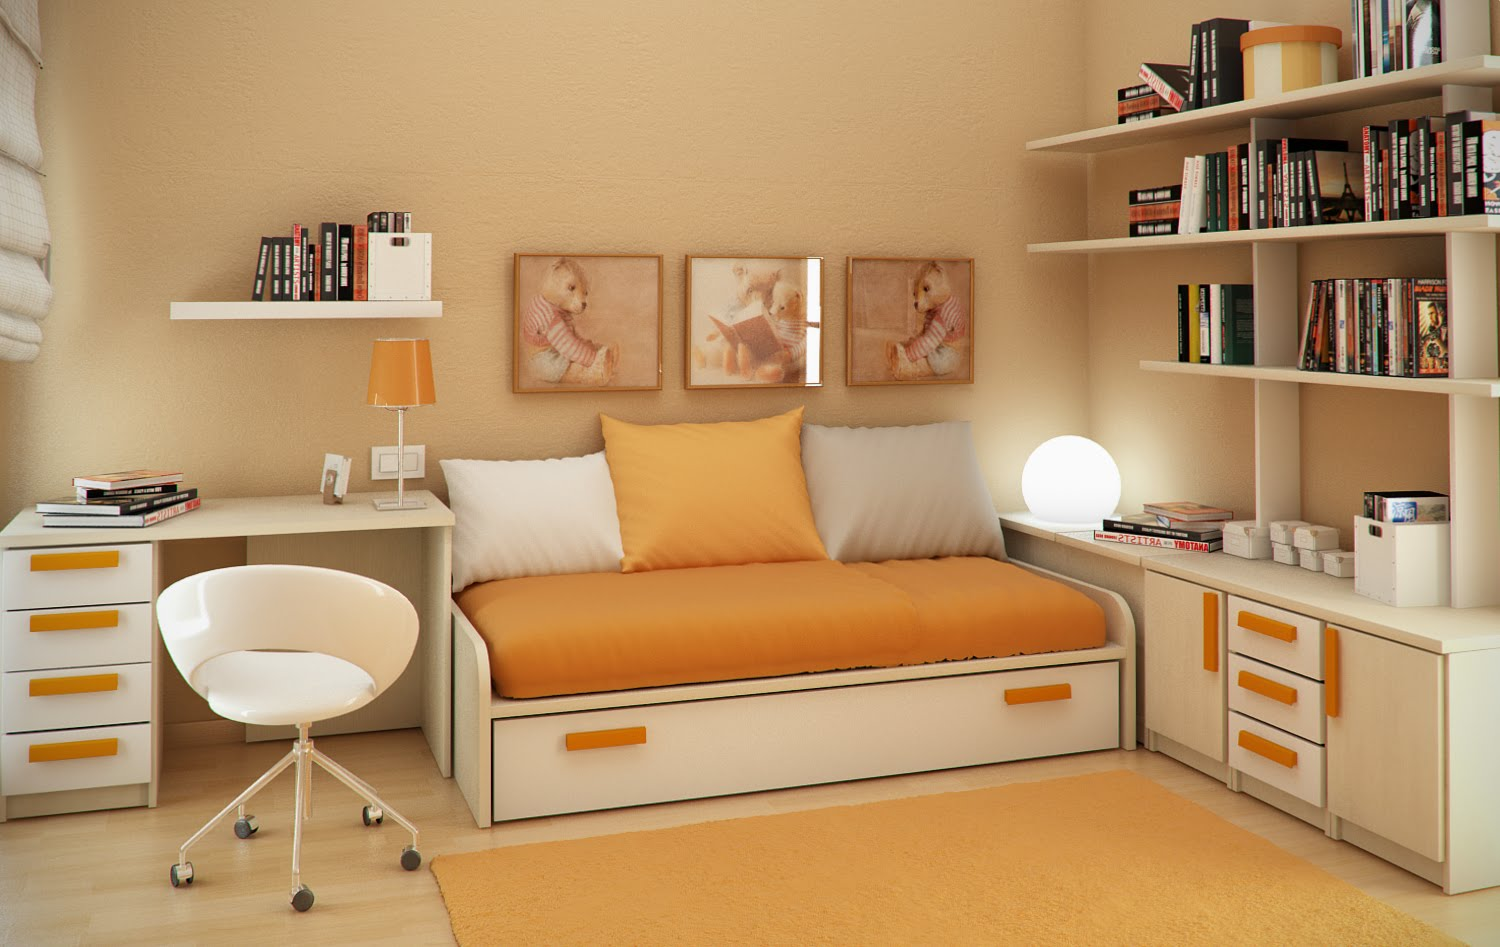 Space Saving For Kids Small Bedroom Design Ideas By Sergi Mengot Ask Home Design